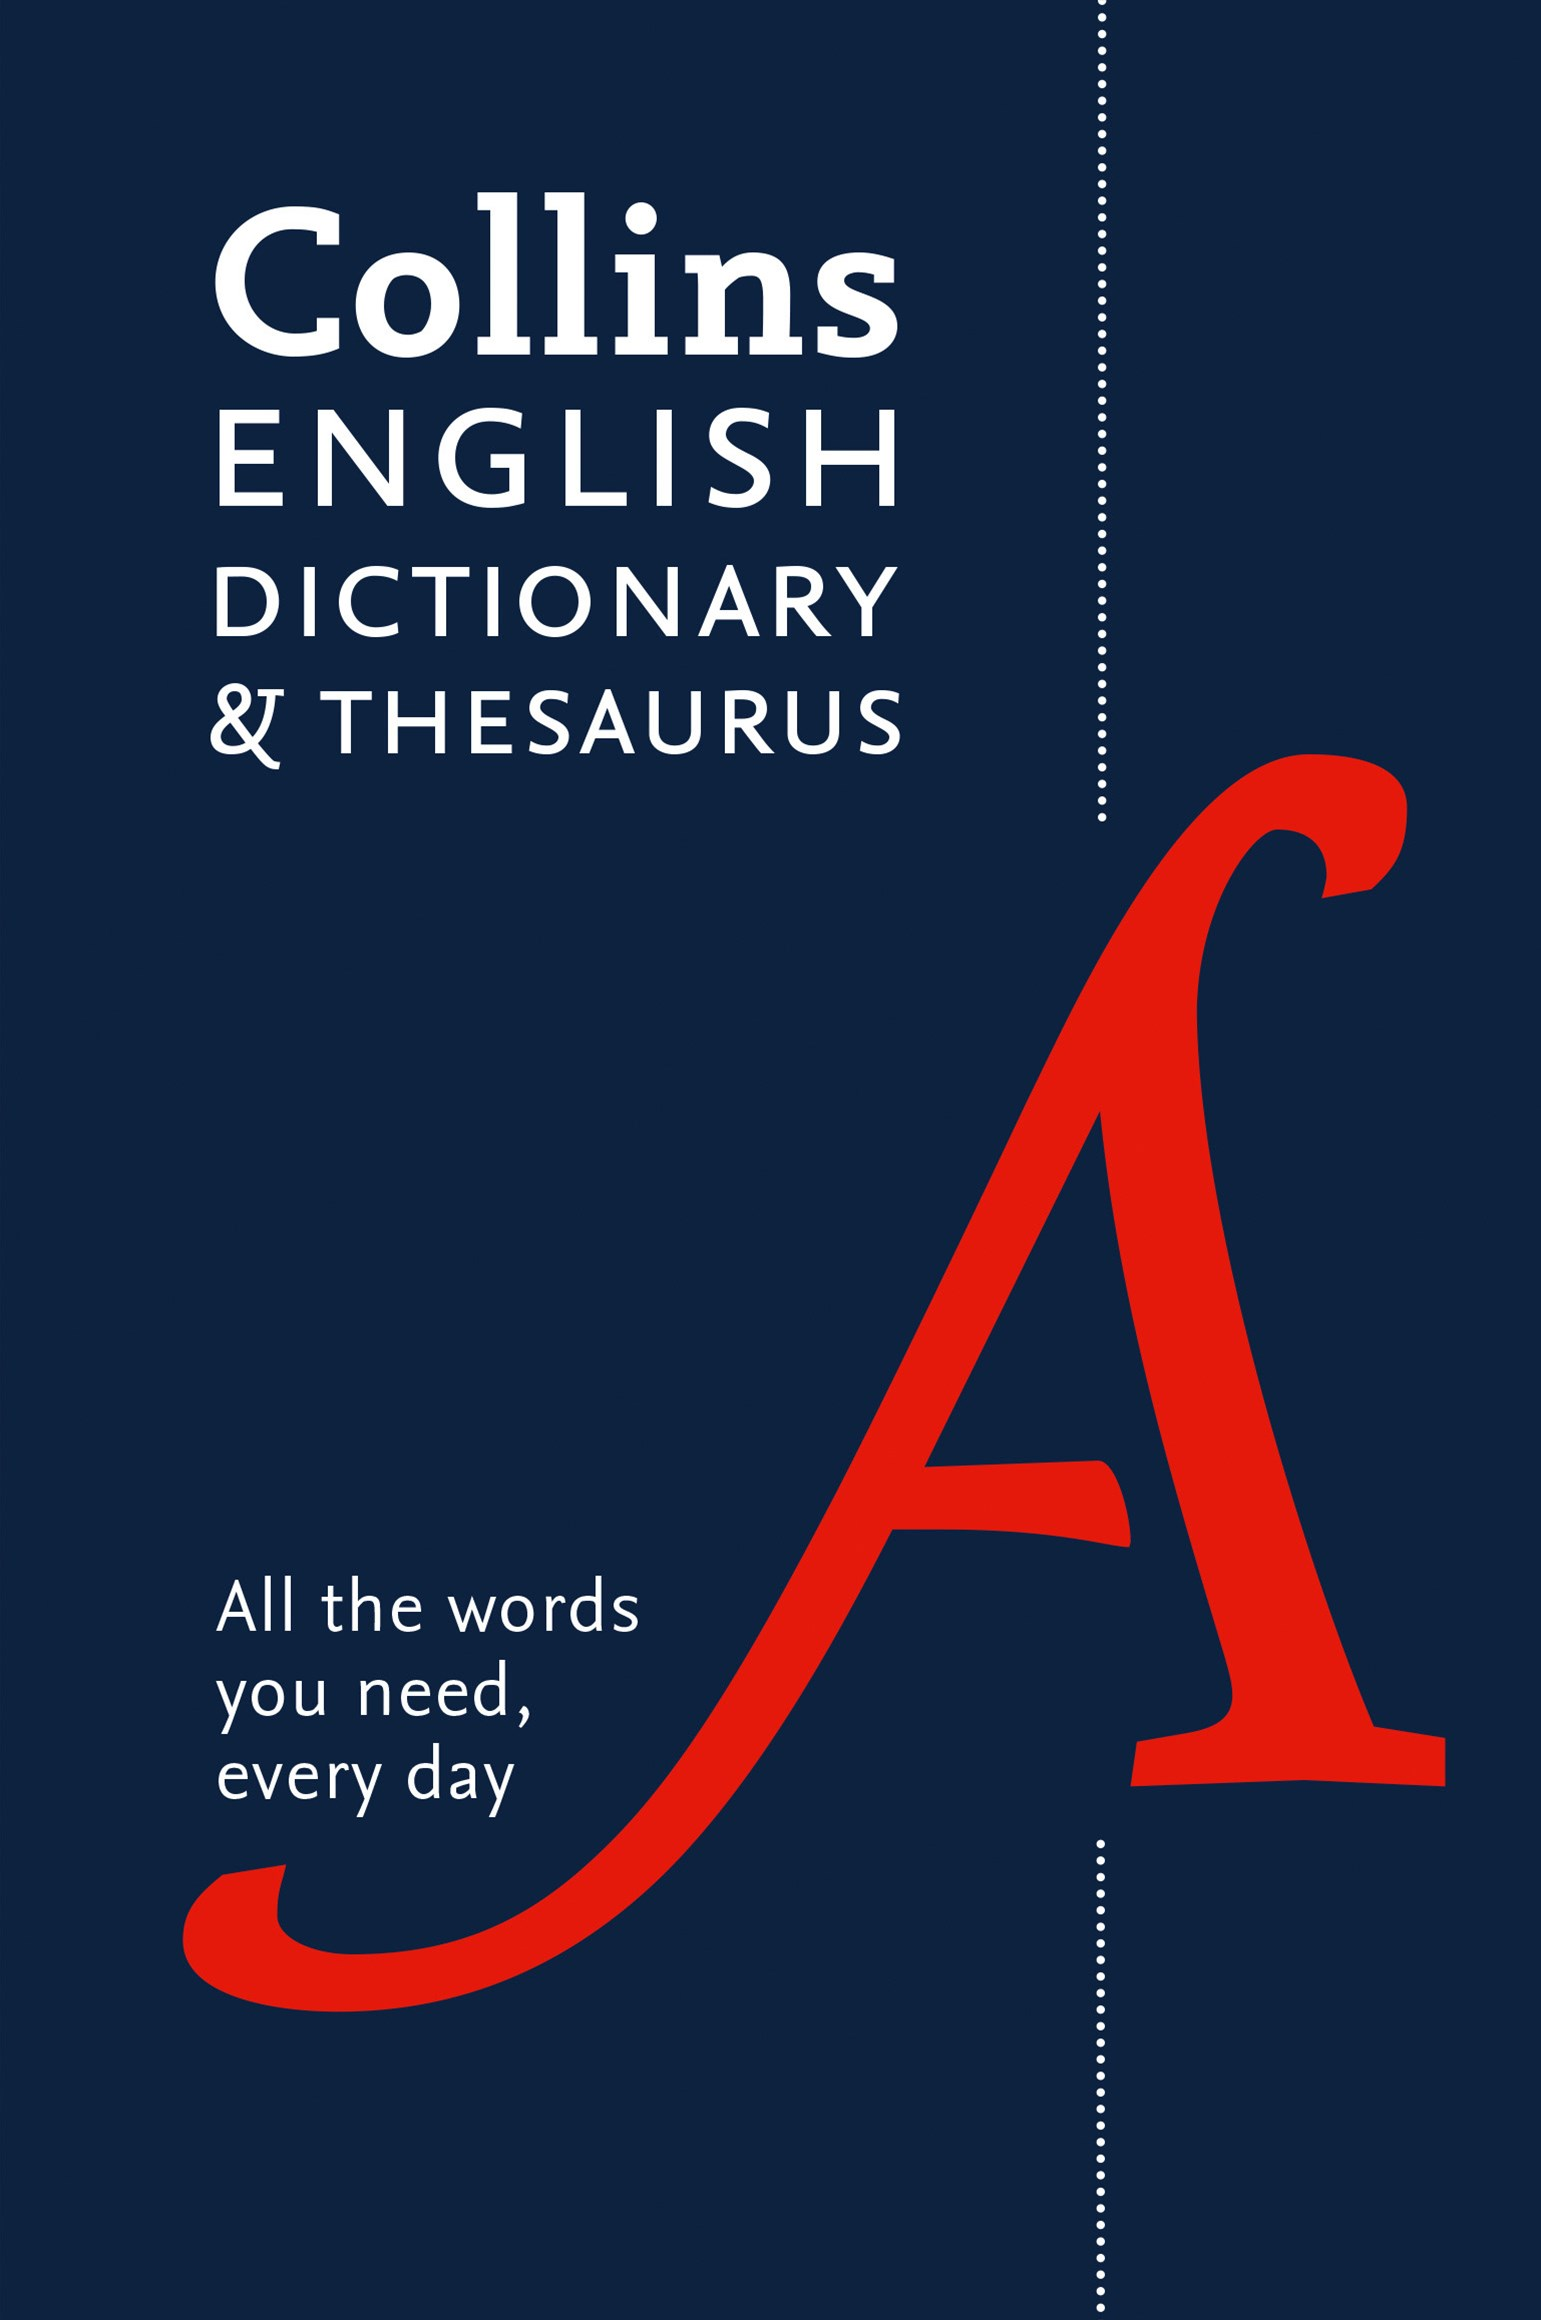 Collins English Dictionary and Thesaurus [5th Edition]